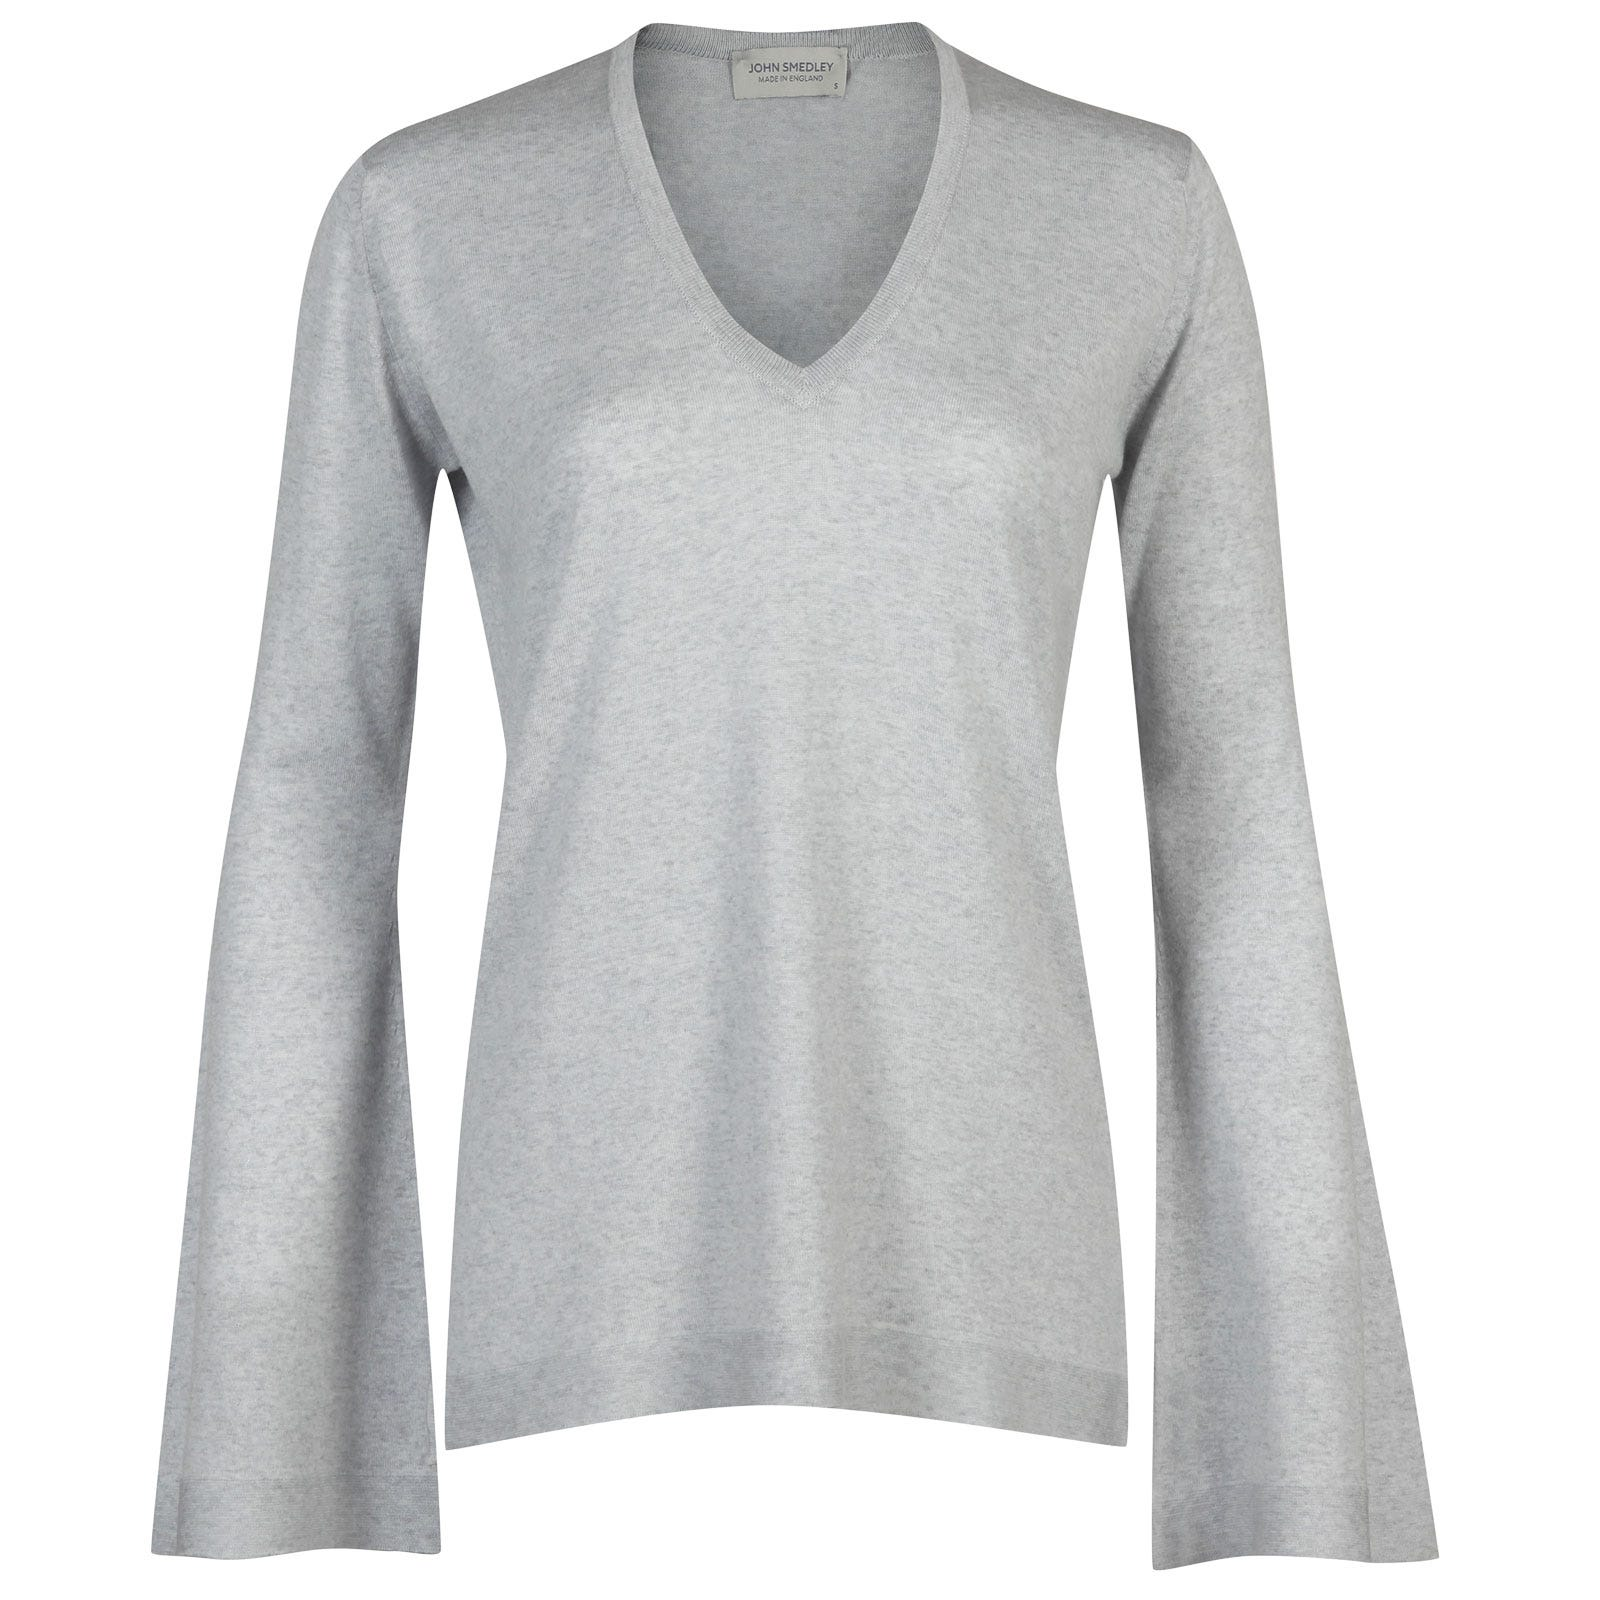 John Smedley bannerman Merino Wool Sweater in Bardot Grey-XL